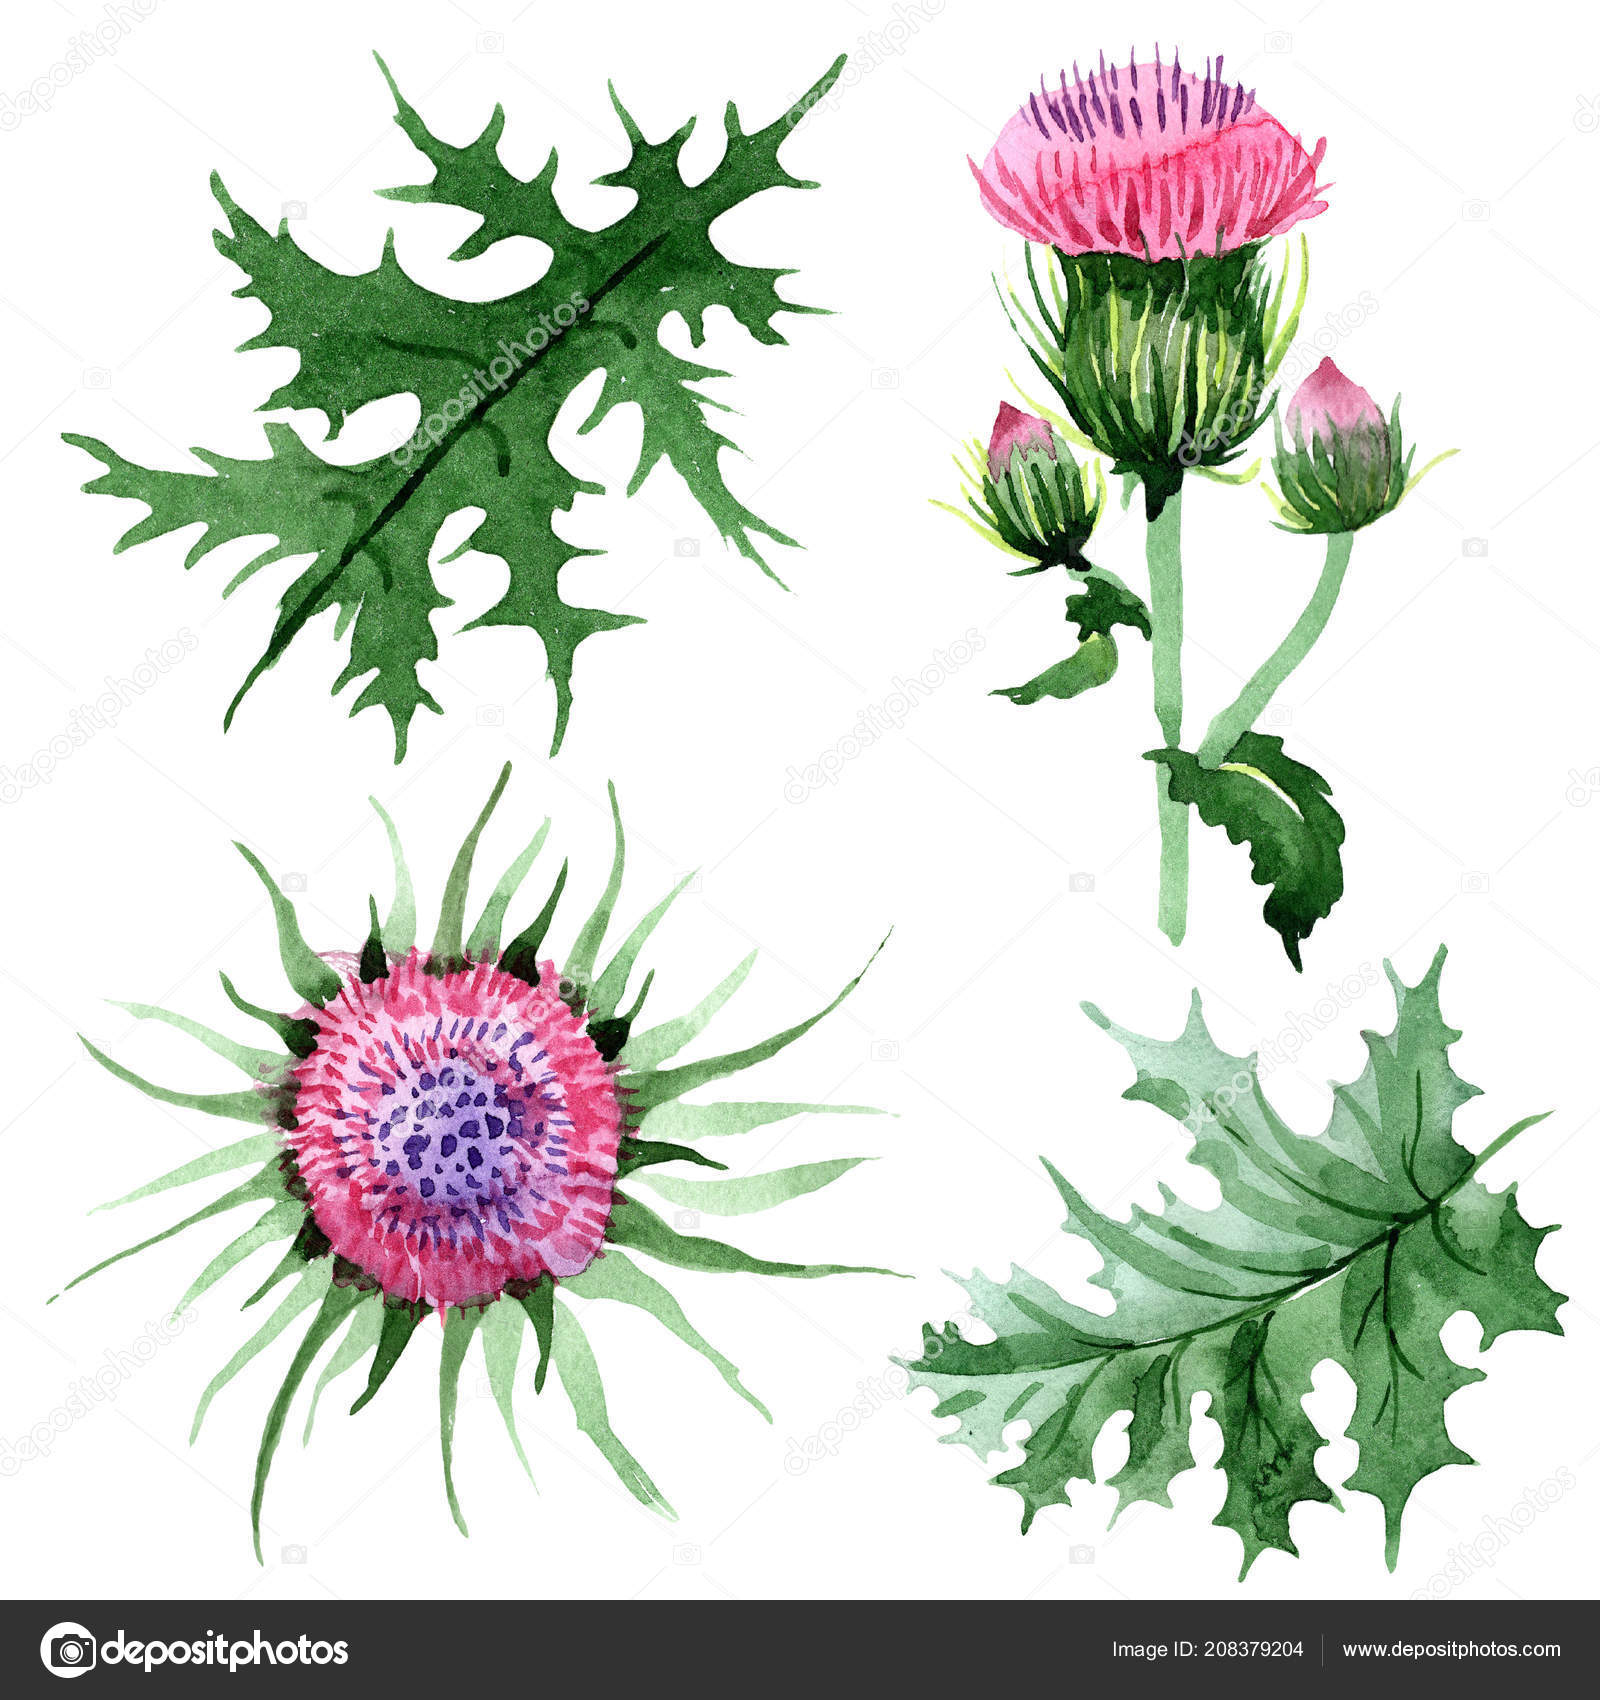 7100df6c6 Watercolor Pink Thistle Wildflower Floral Botanical Flower Isolated  Illustration Element — Stock Photo